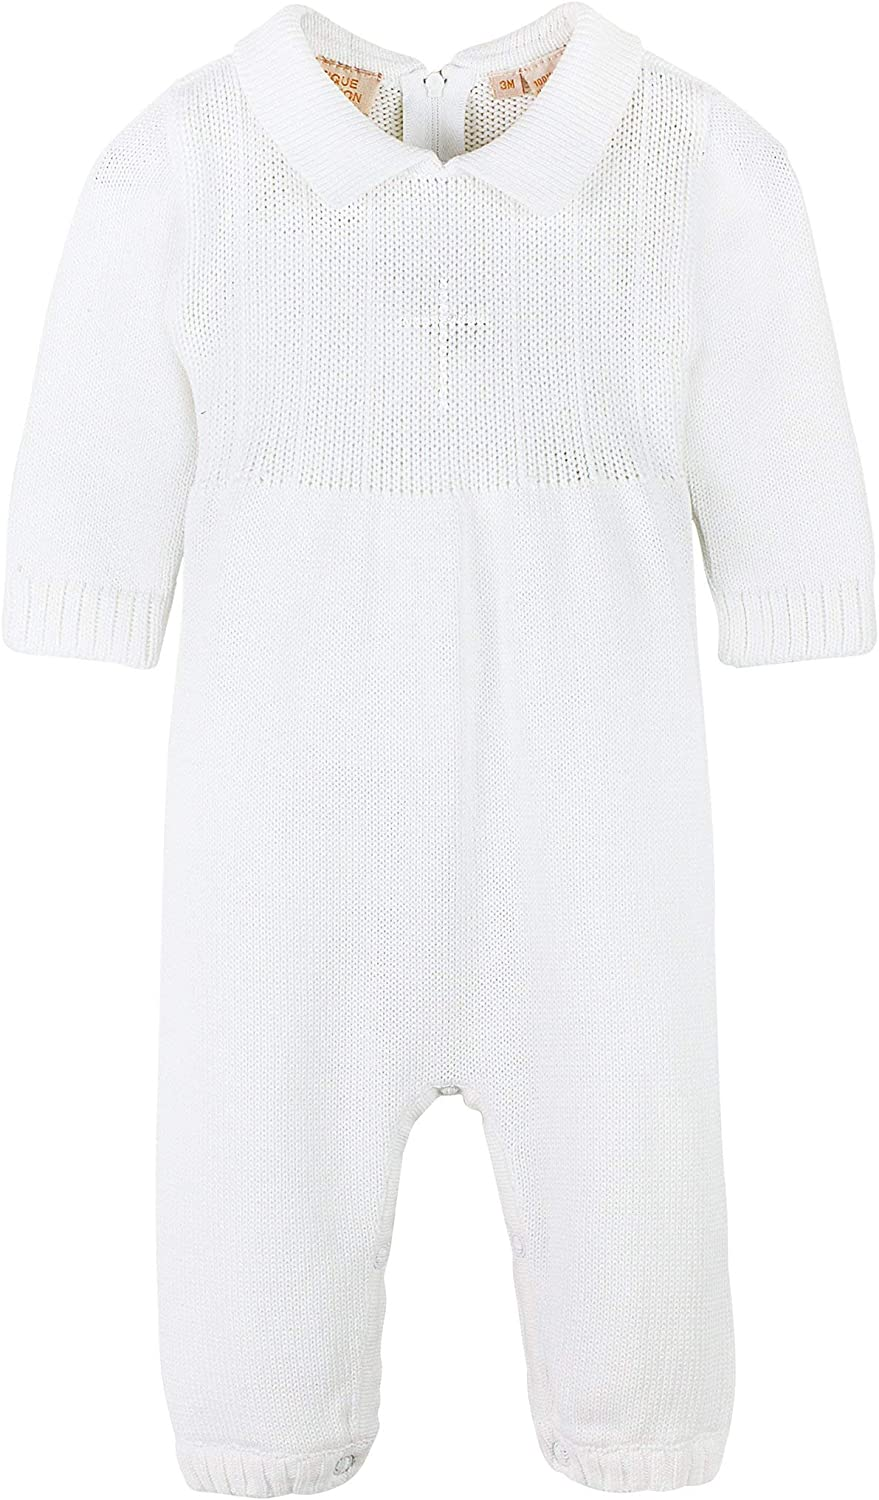 Carriage Boutique Baby Boys Christening Outfit with Bonnet Hat Cross Detail